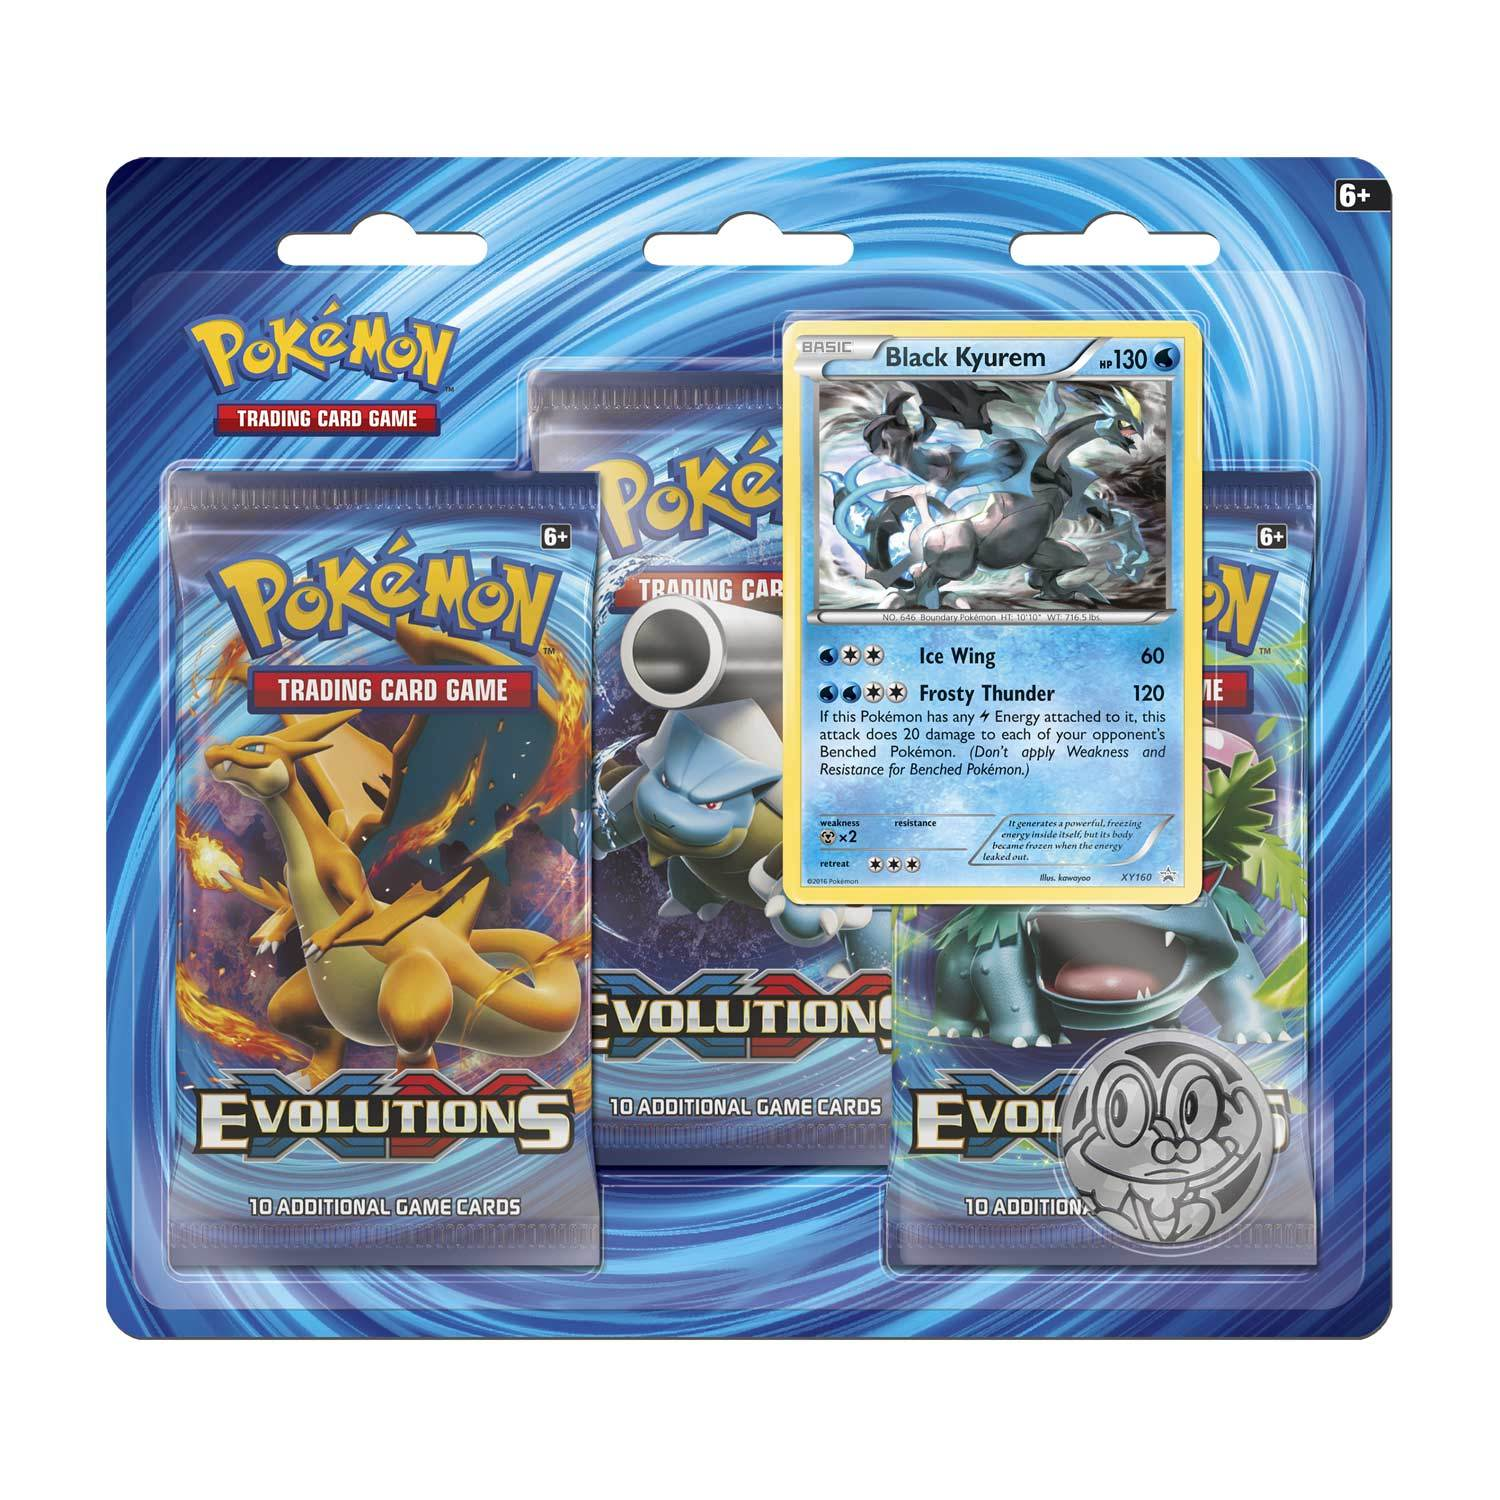 Pokemon Tcg Xy Evolutions 3 Pack Blister Black Kyurem Image At Mighty Ape Nz